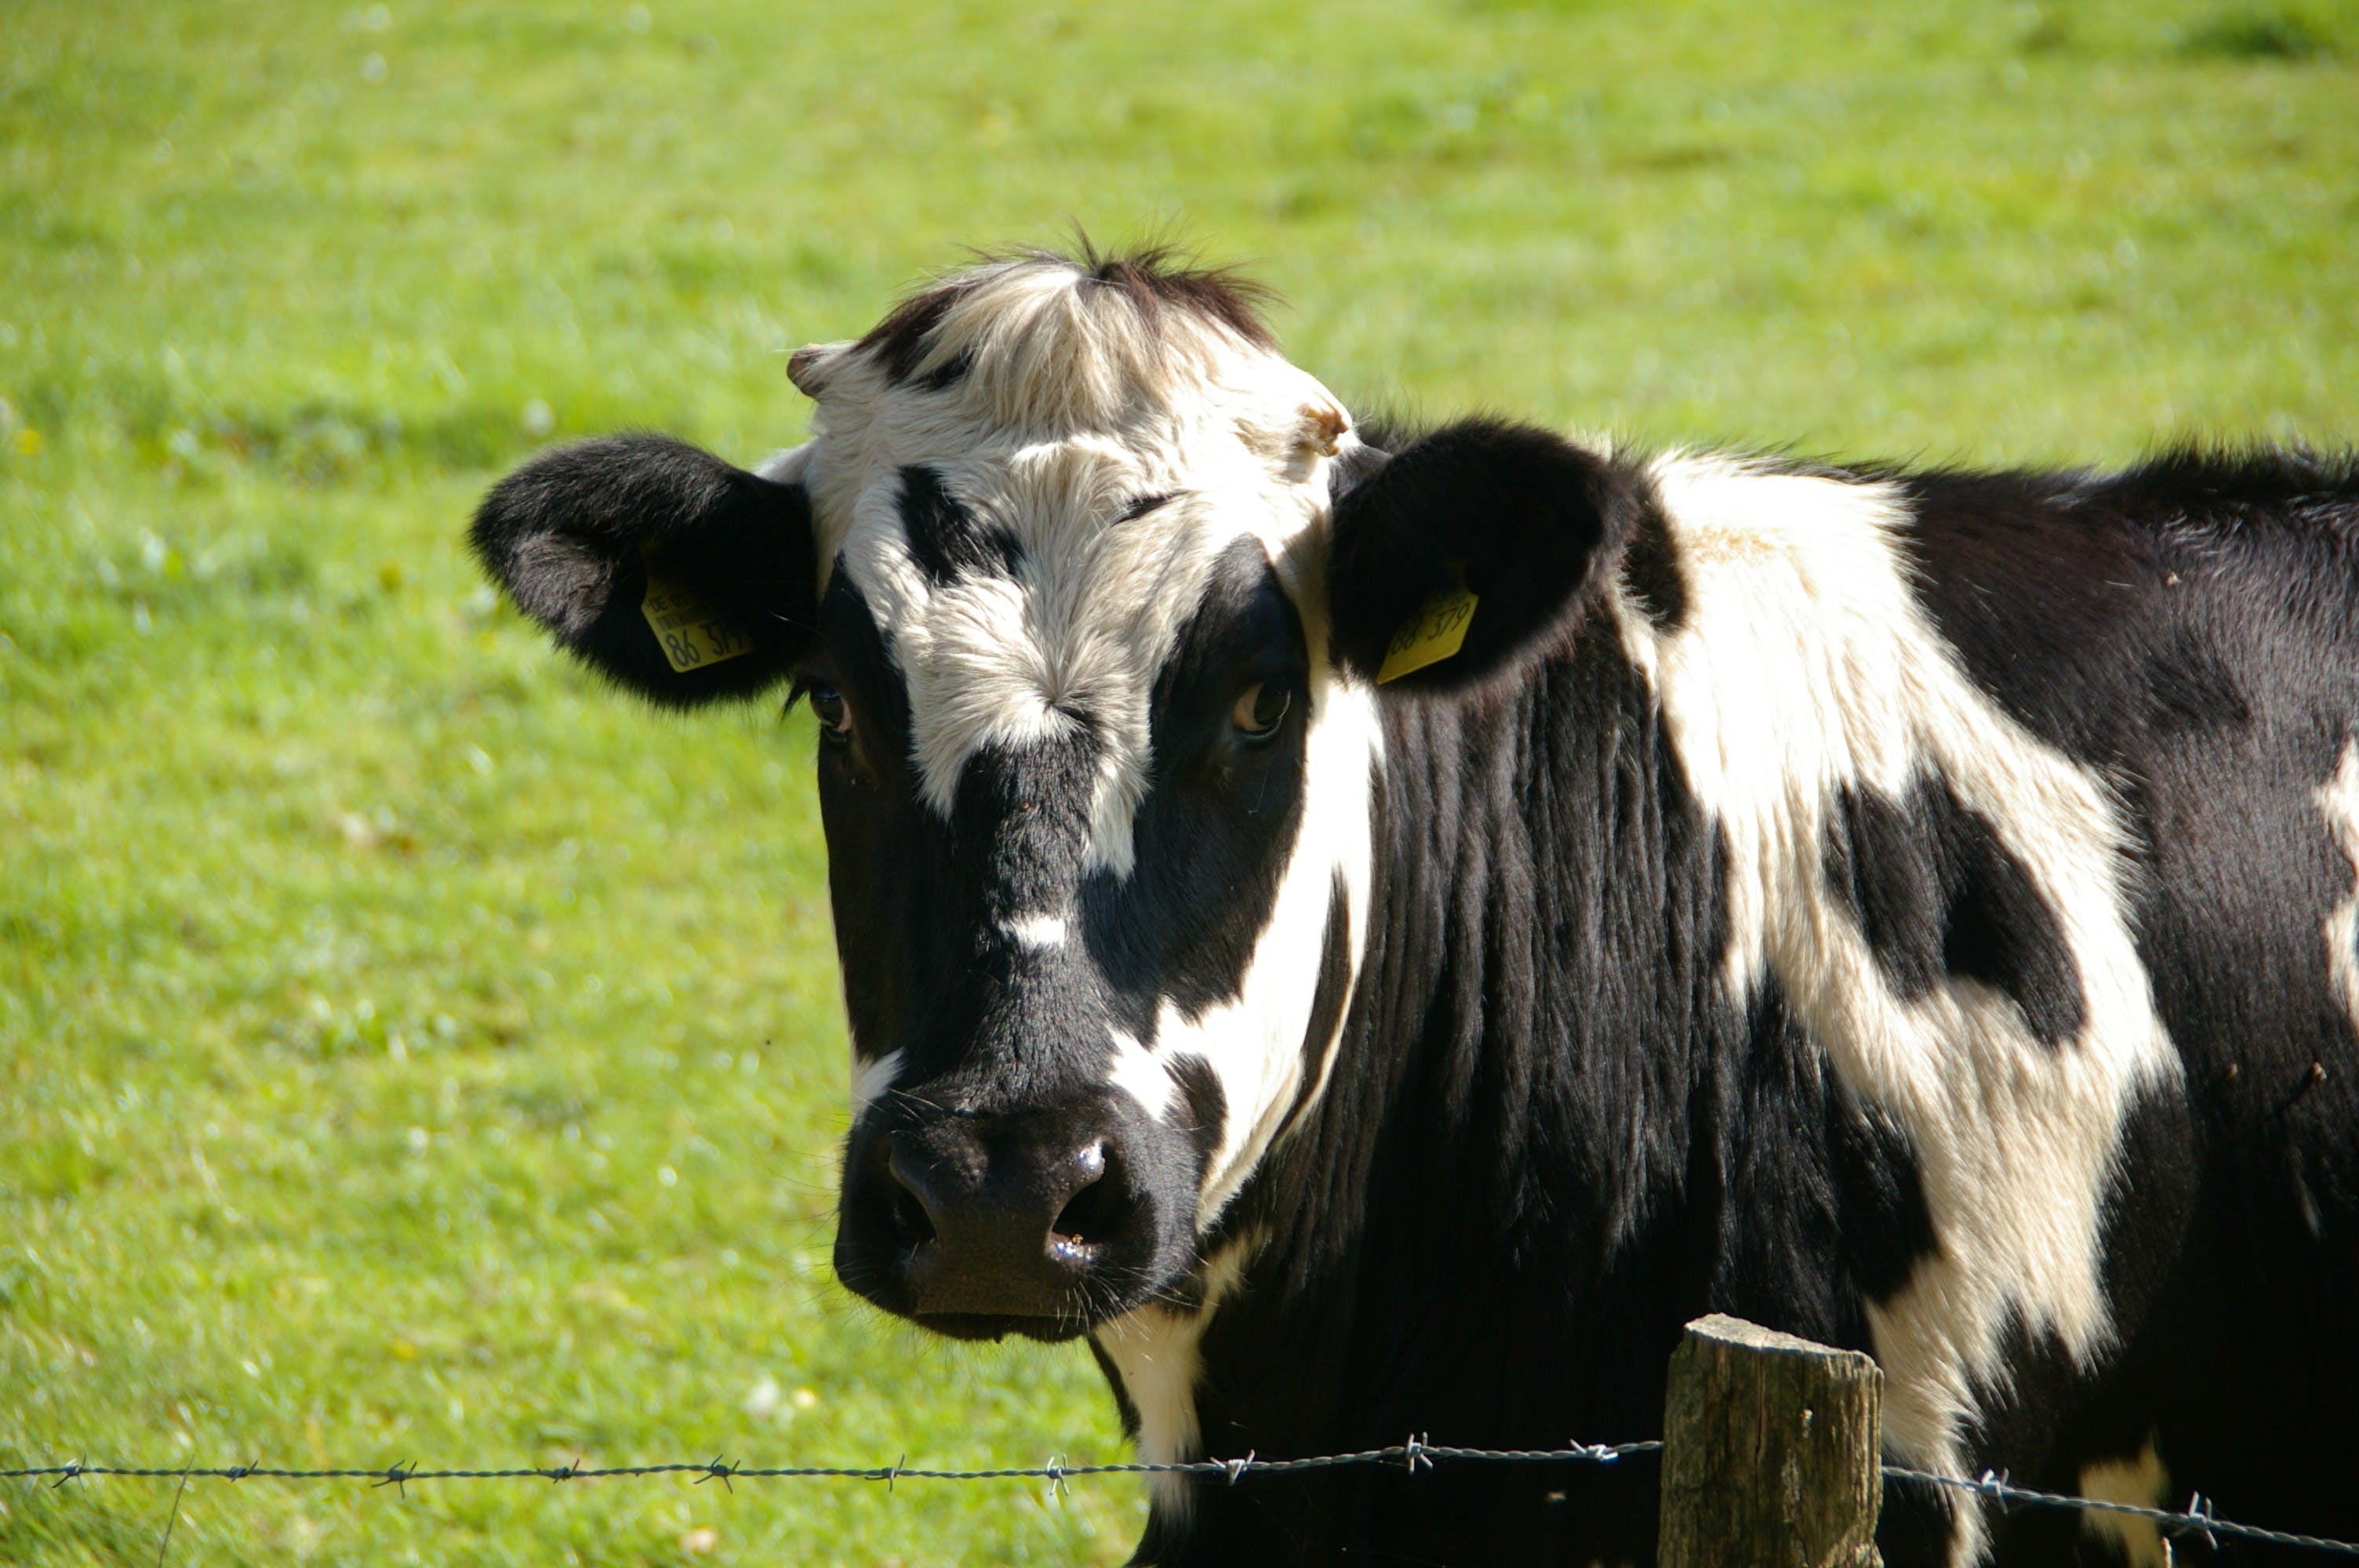 Black and White Cow in Green Grass Field